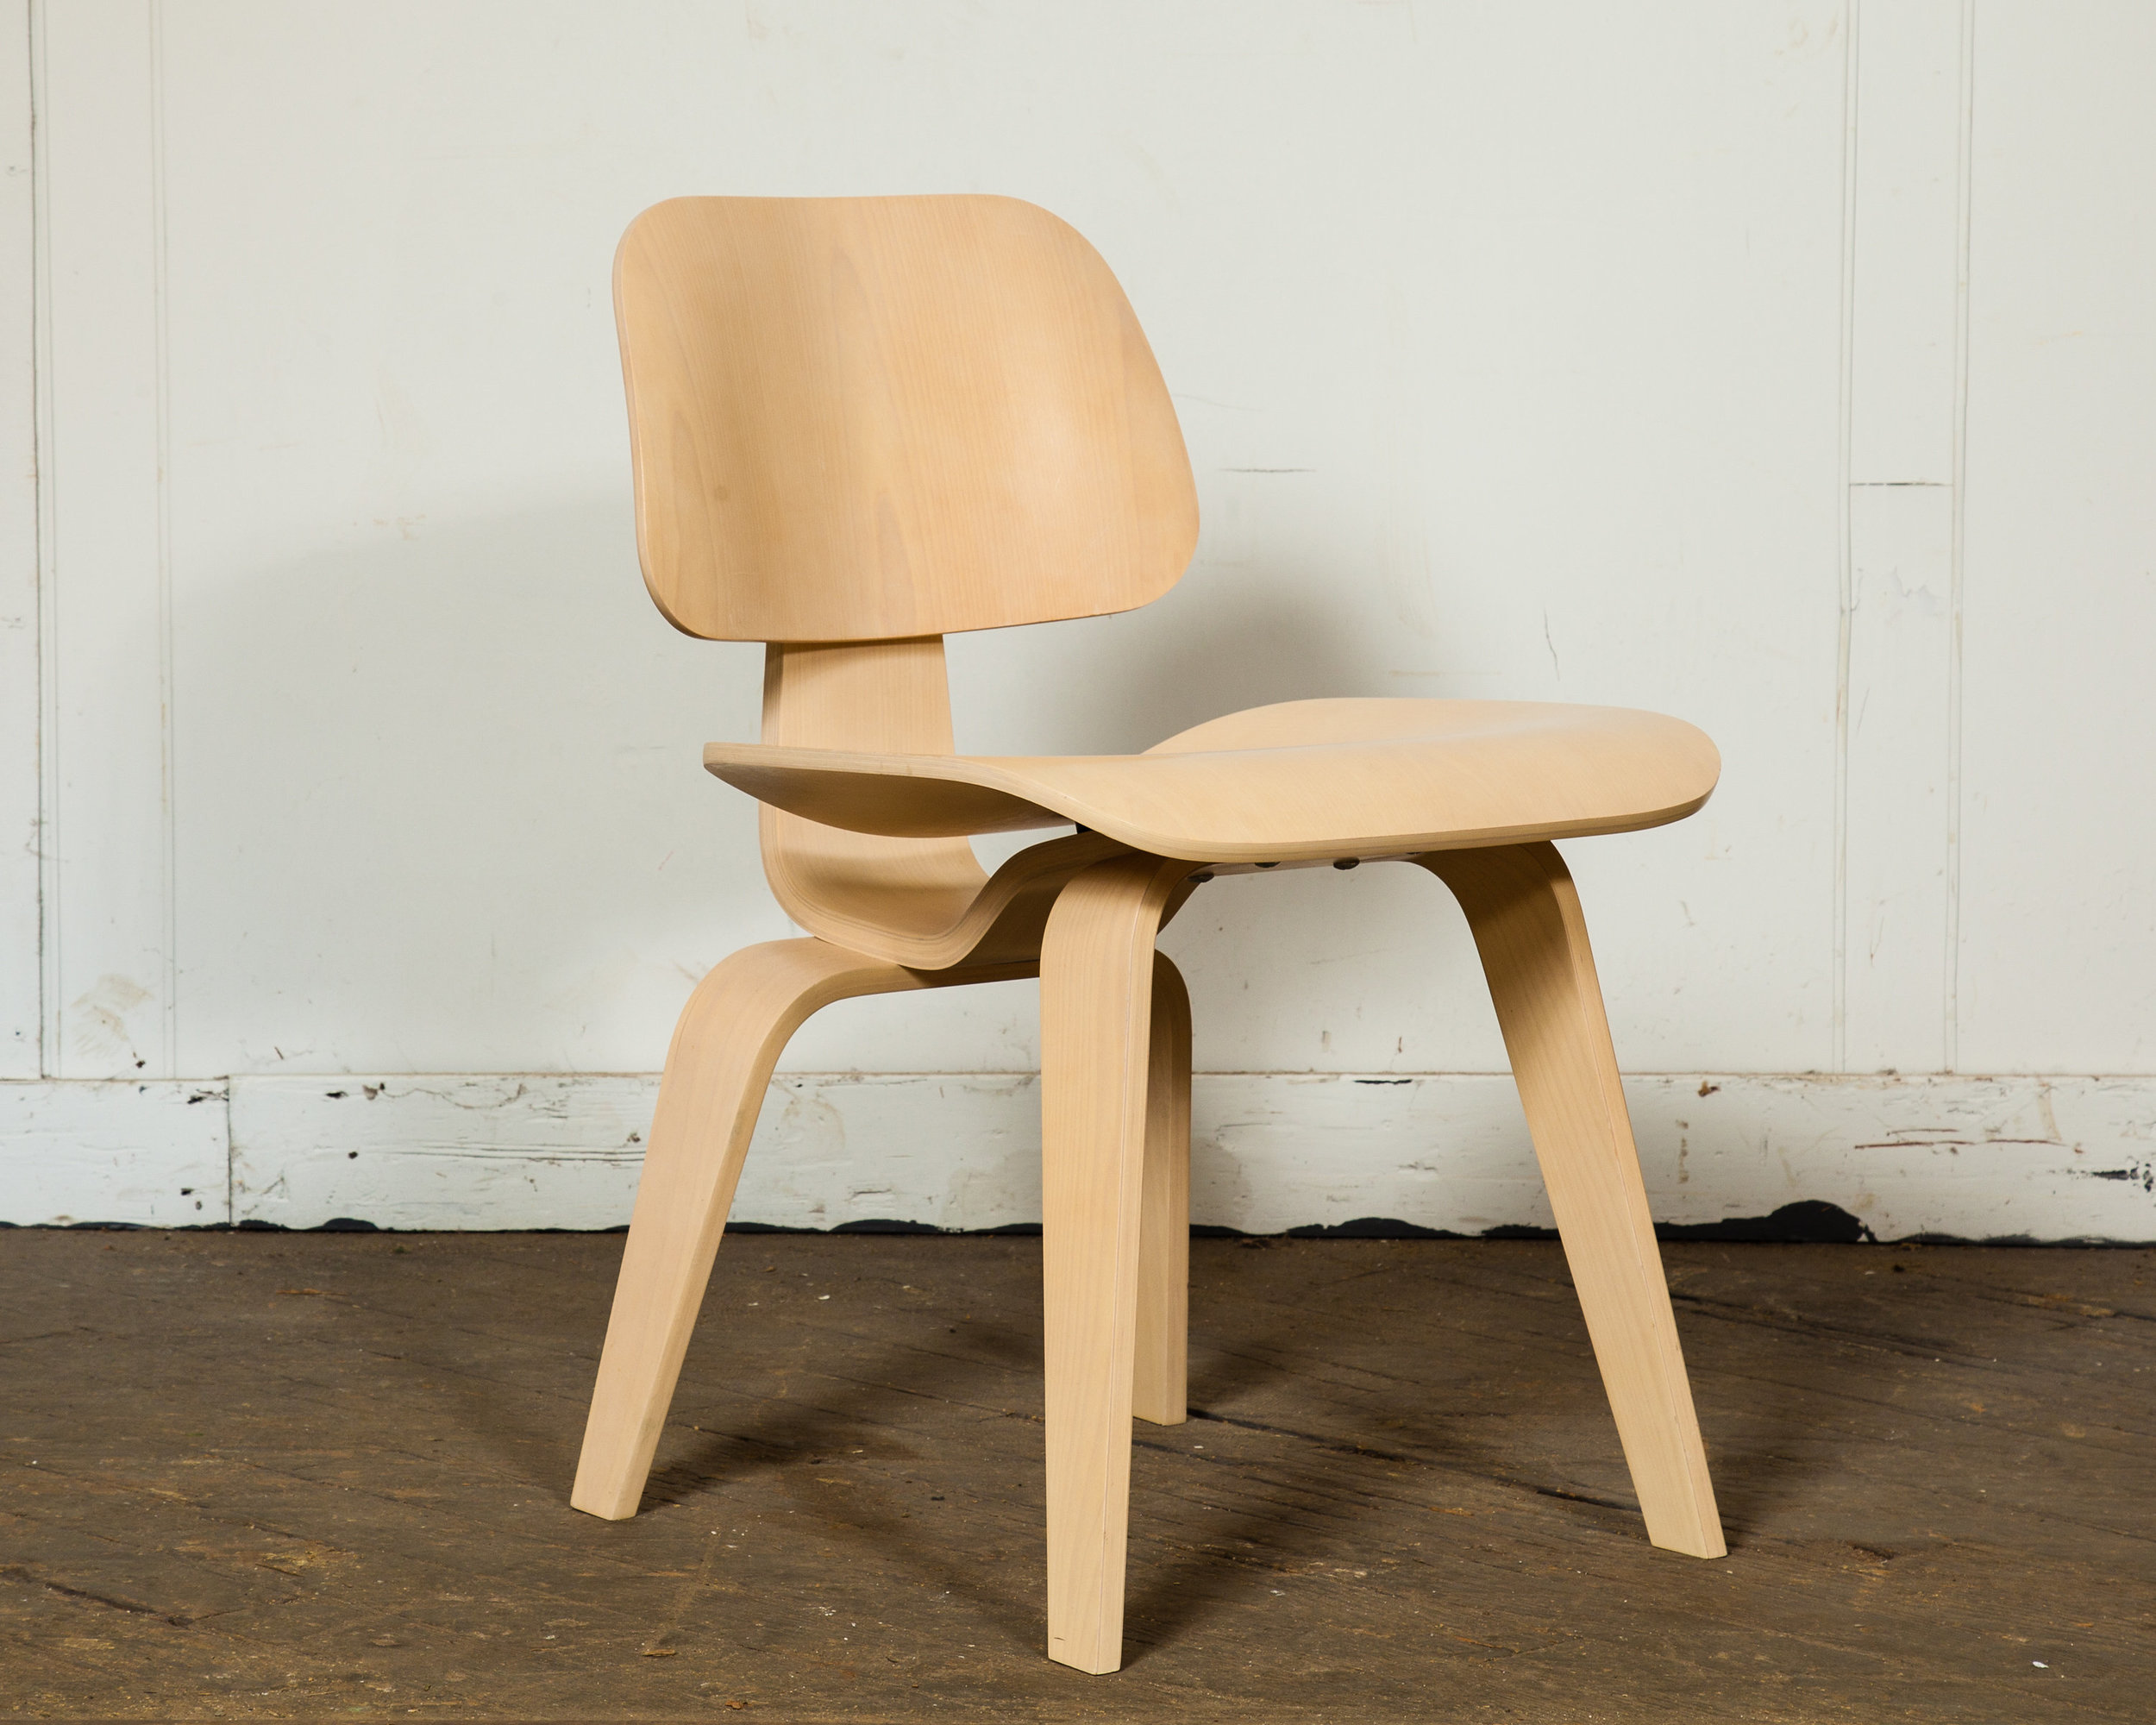 A set of two 1960's Herman Miller chairs are a beautiful, simplistic addition to your work or home office.